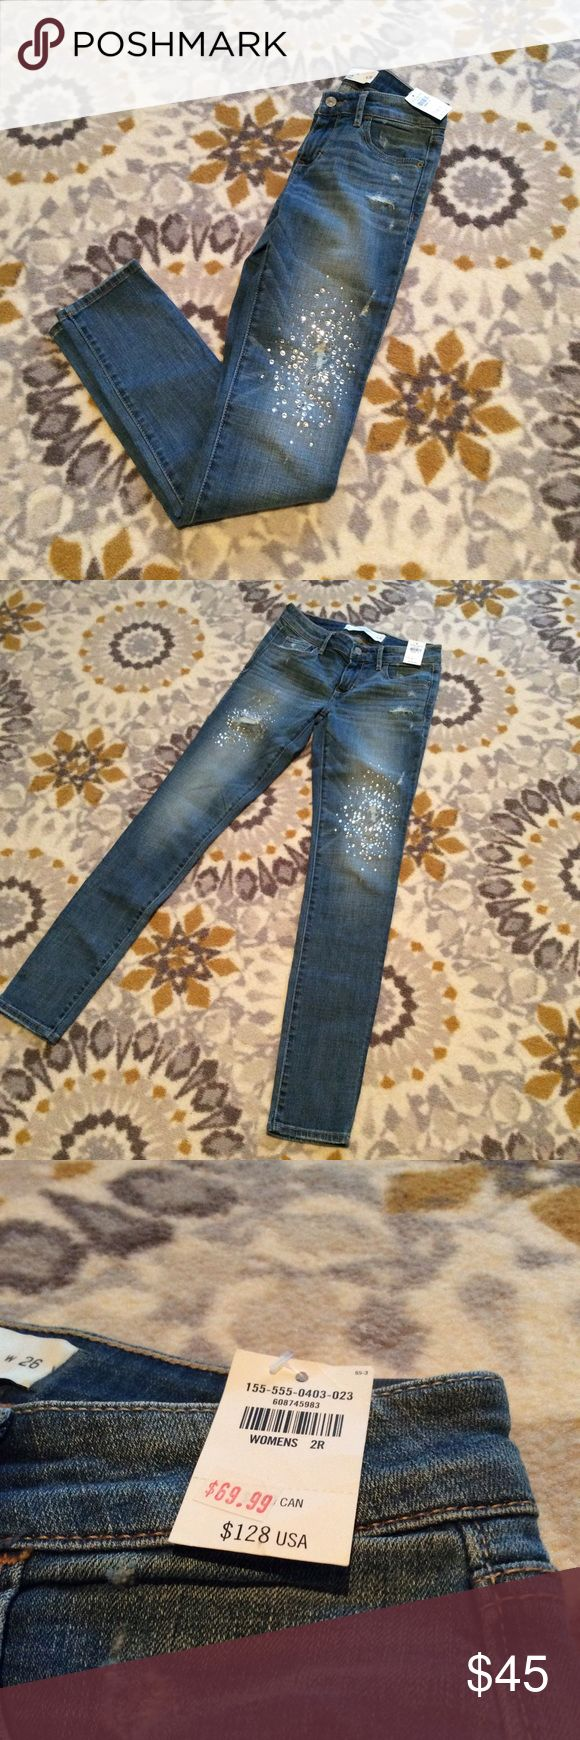 CLOSET CLEAROUT! NWT Abercrombie and Fitch Jeans NWT Abercrombie and Firch Embellished Skinny Jeans. These jeans are so unique and flattering. Great for your NYE celebration! Smoke-free home :) ask questions, make a reasonable offer and bundle bundle bundle!! Abercrombie & Fitch Jeans Skinny